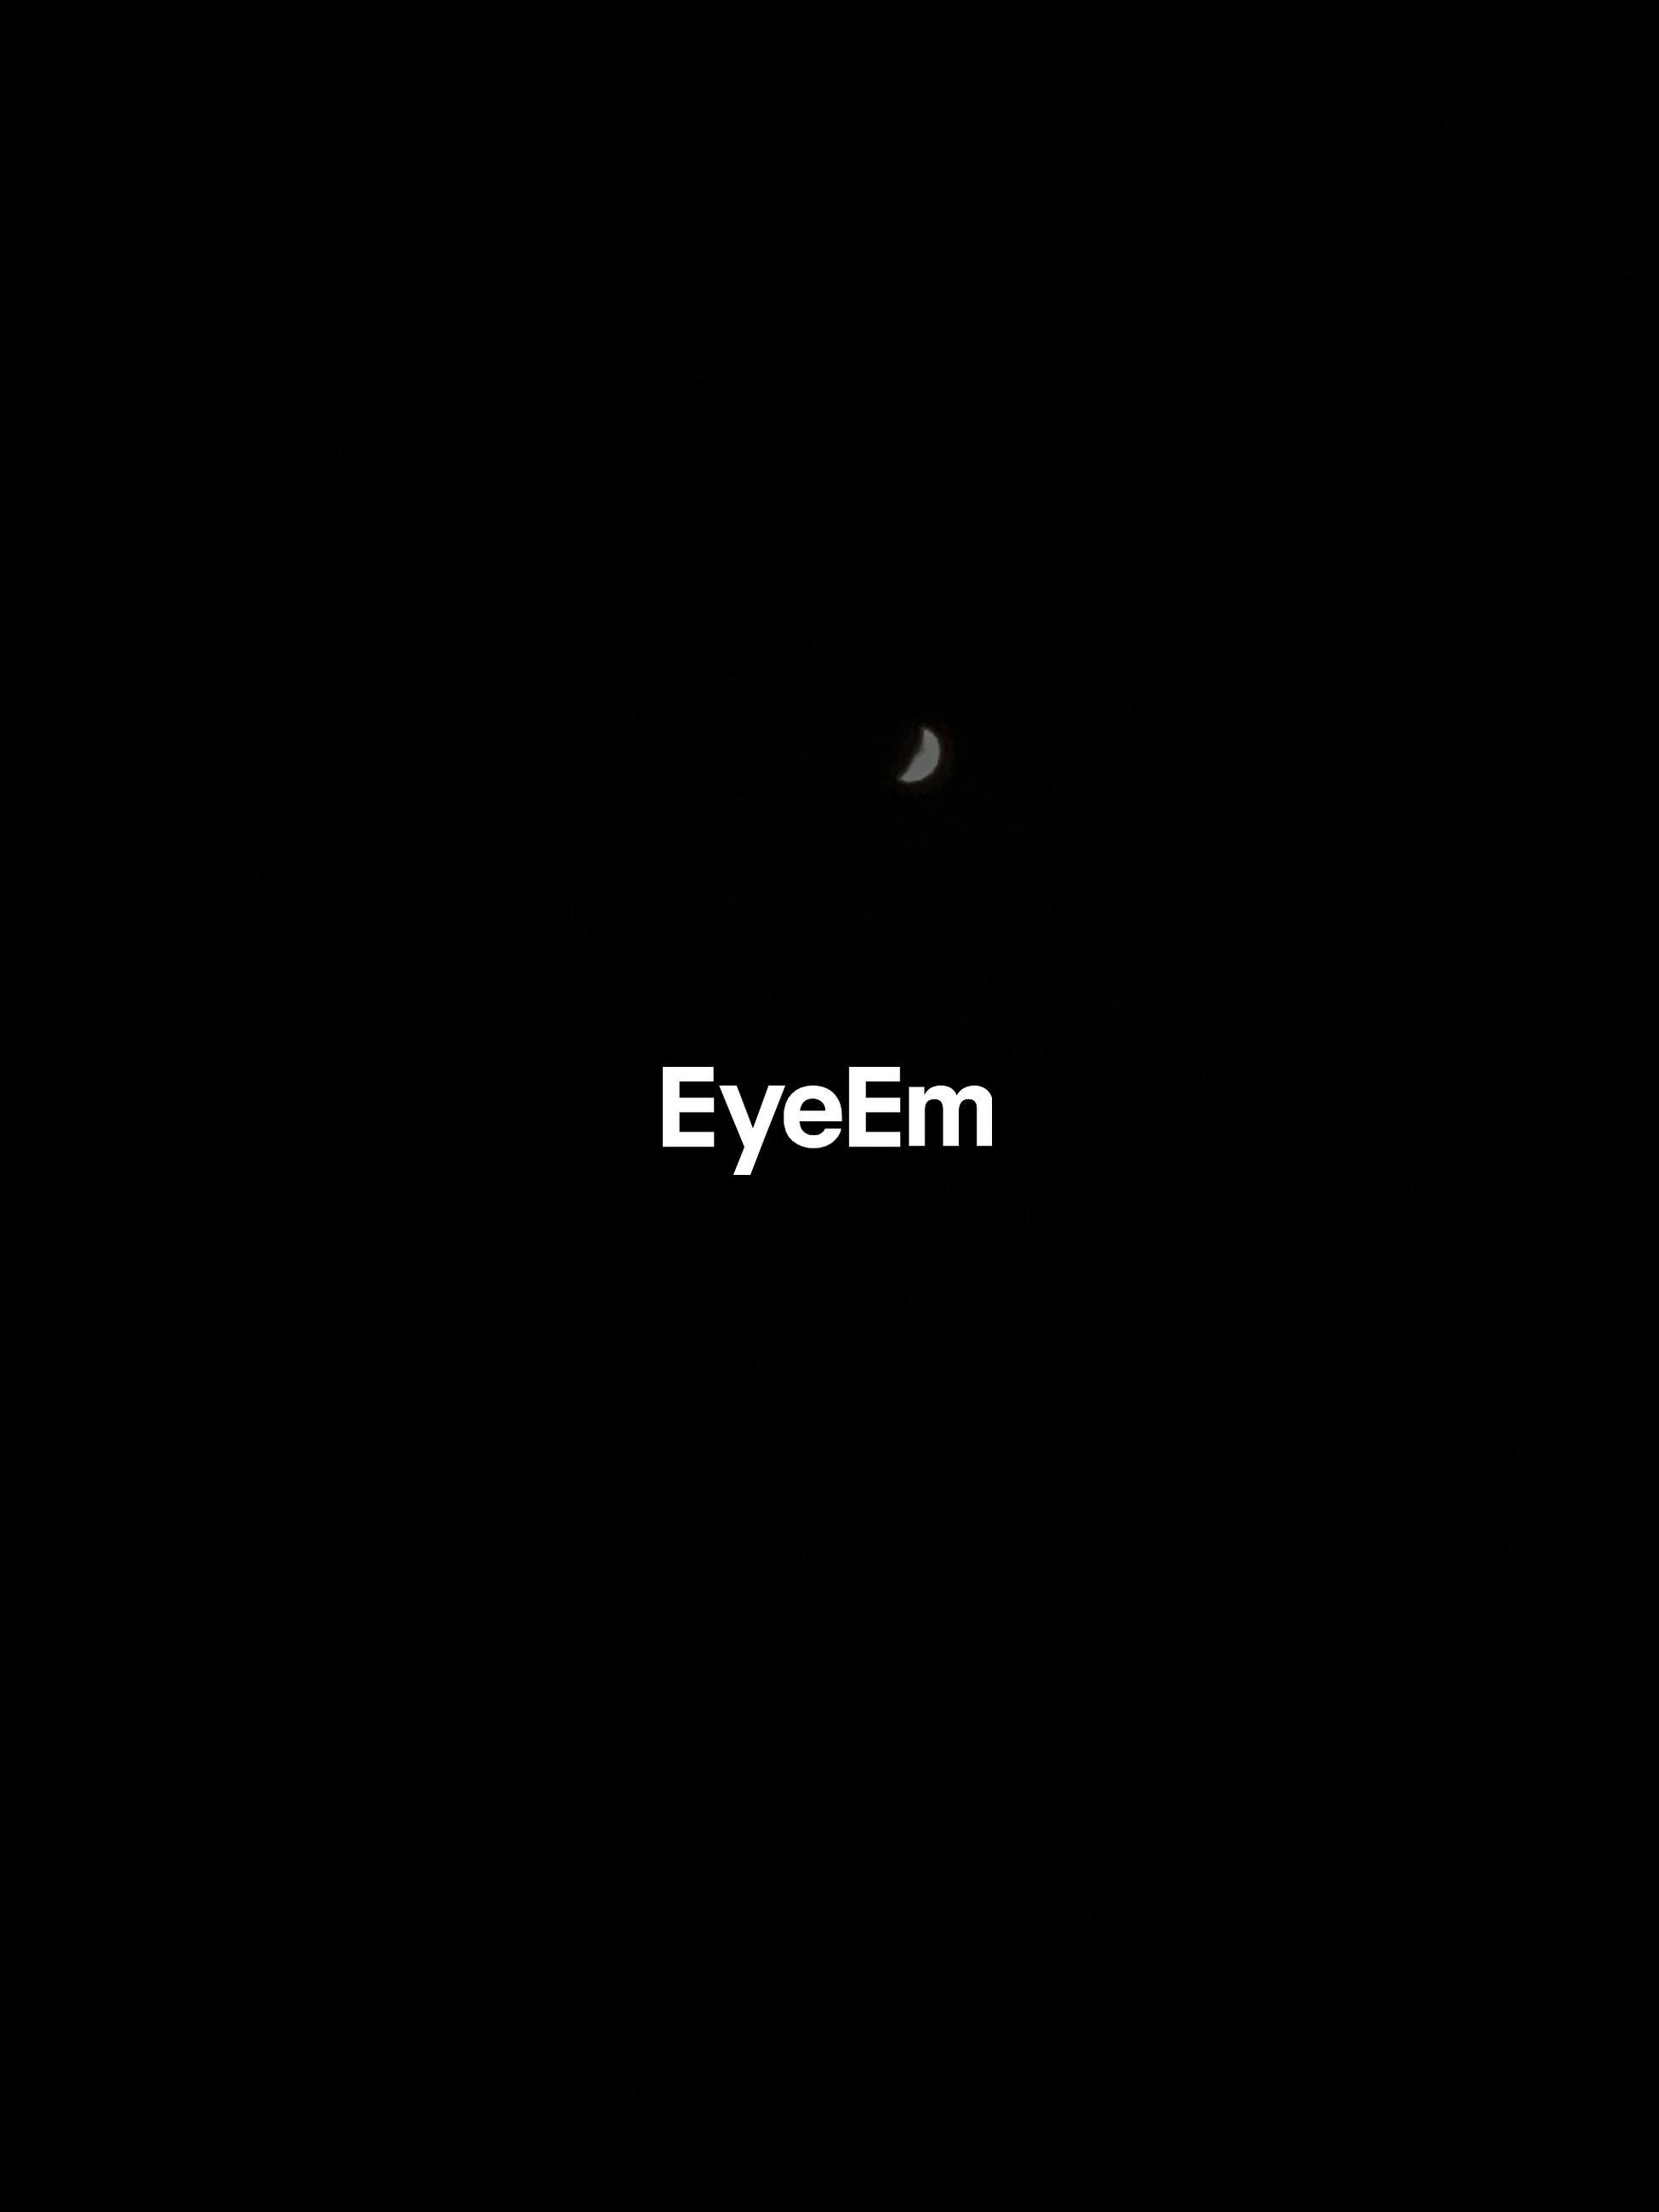 LOW ANGLE VIEW OF SILHOUETTE MOON AGAINST CLEAR SKY